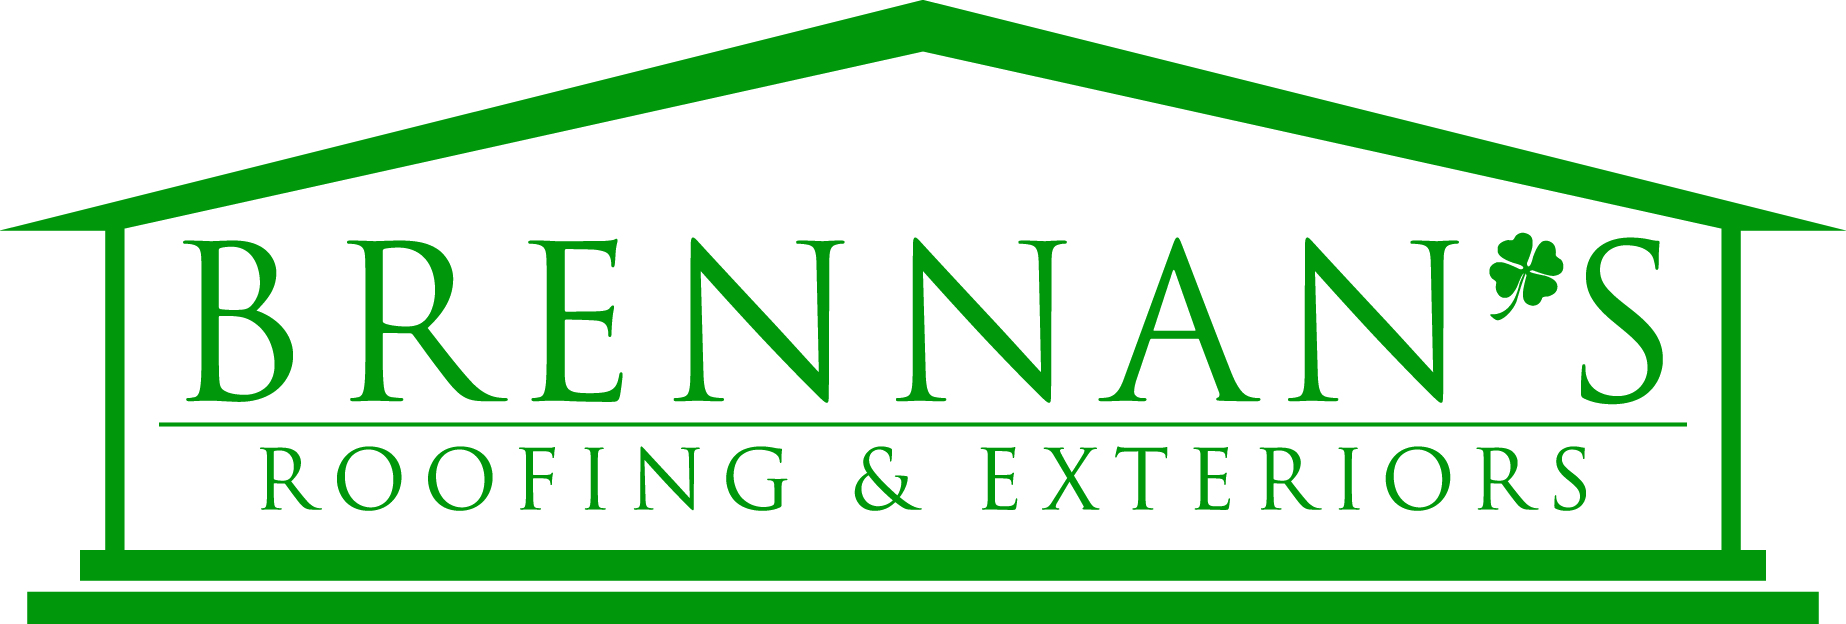 Brennan's Roofing & Exteriors